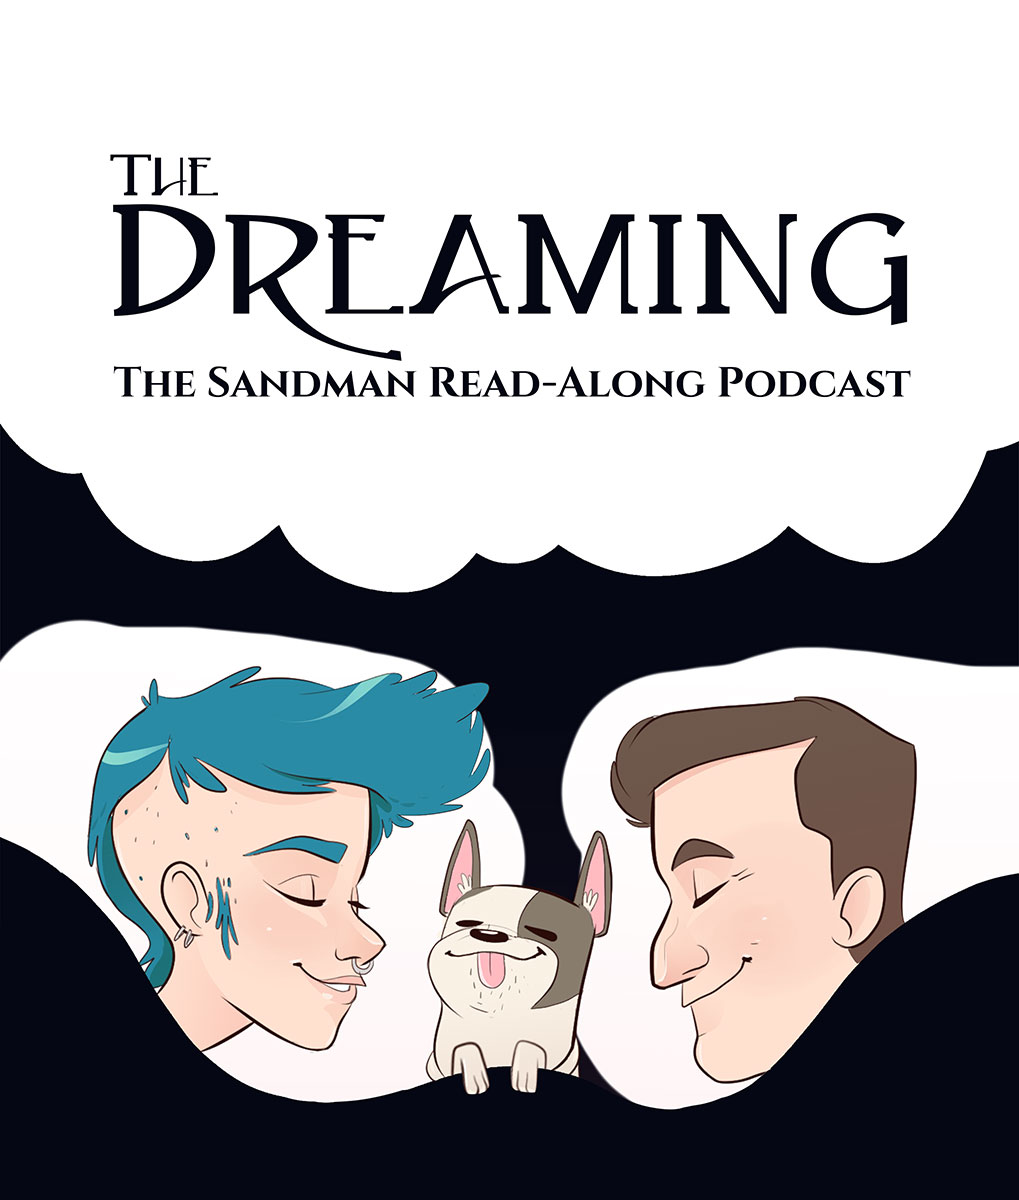 The Dreaming: The Sandman Read-Along Podcast